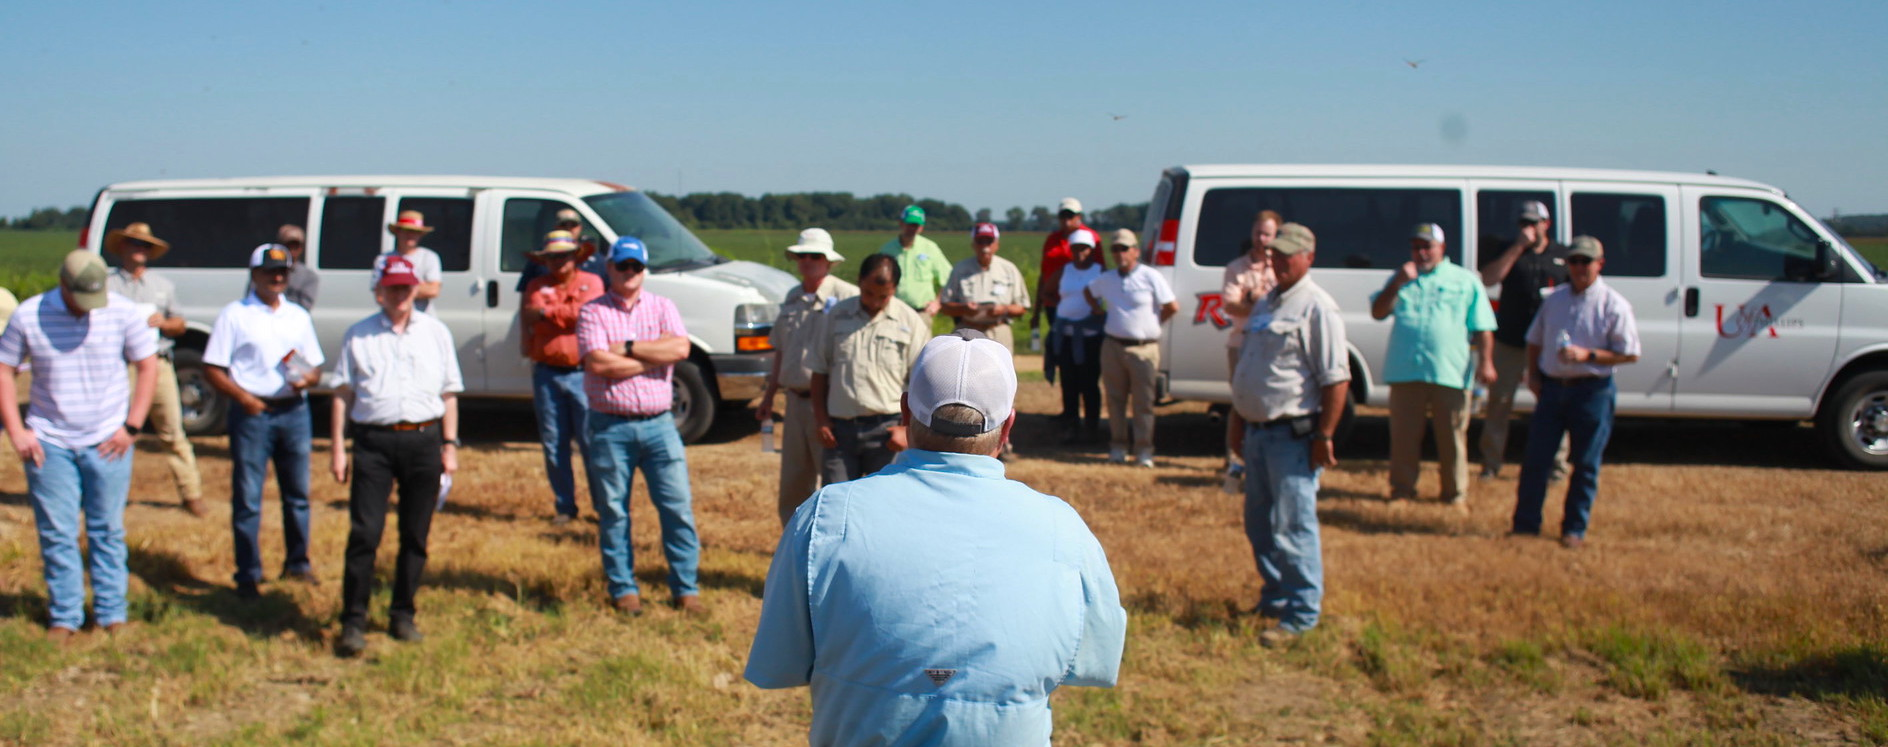 In-person field day event. A researcher stands in front of a group of attendees with his back to the camera.